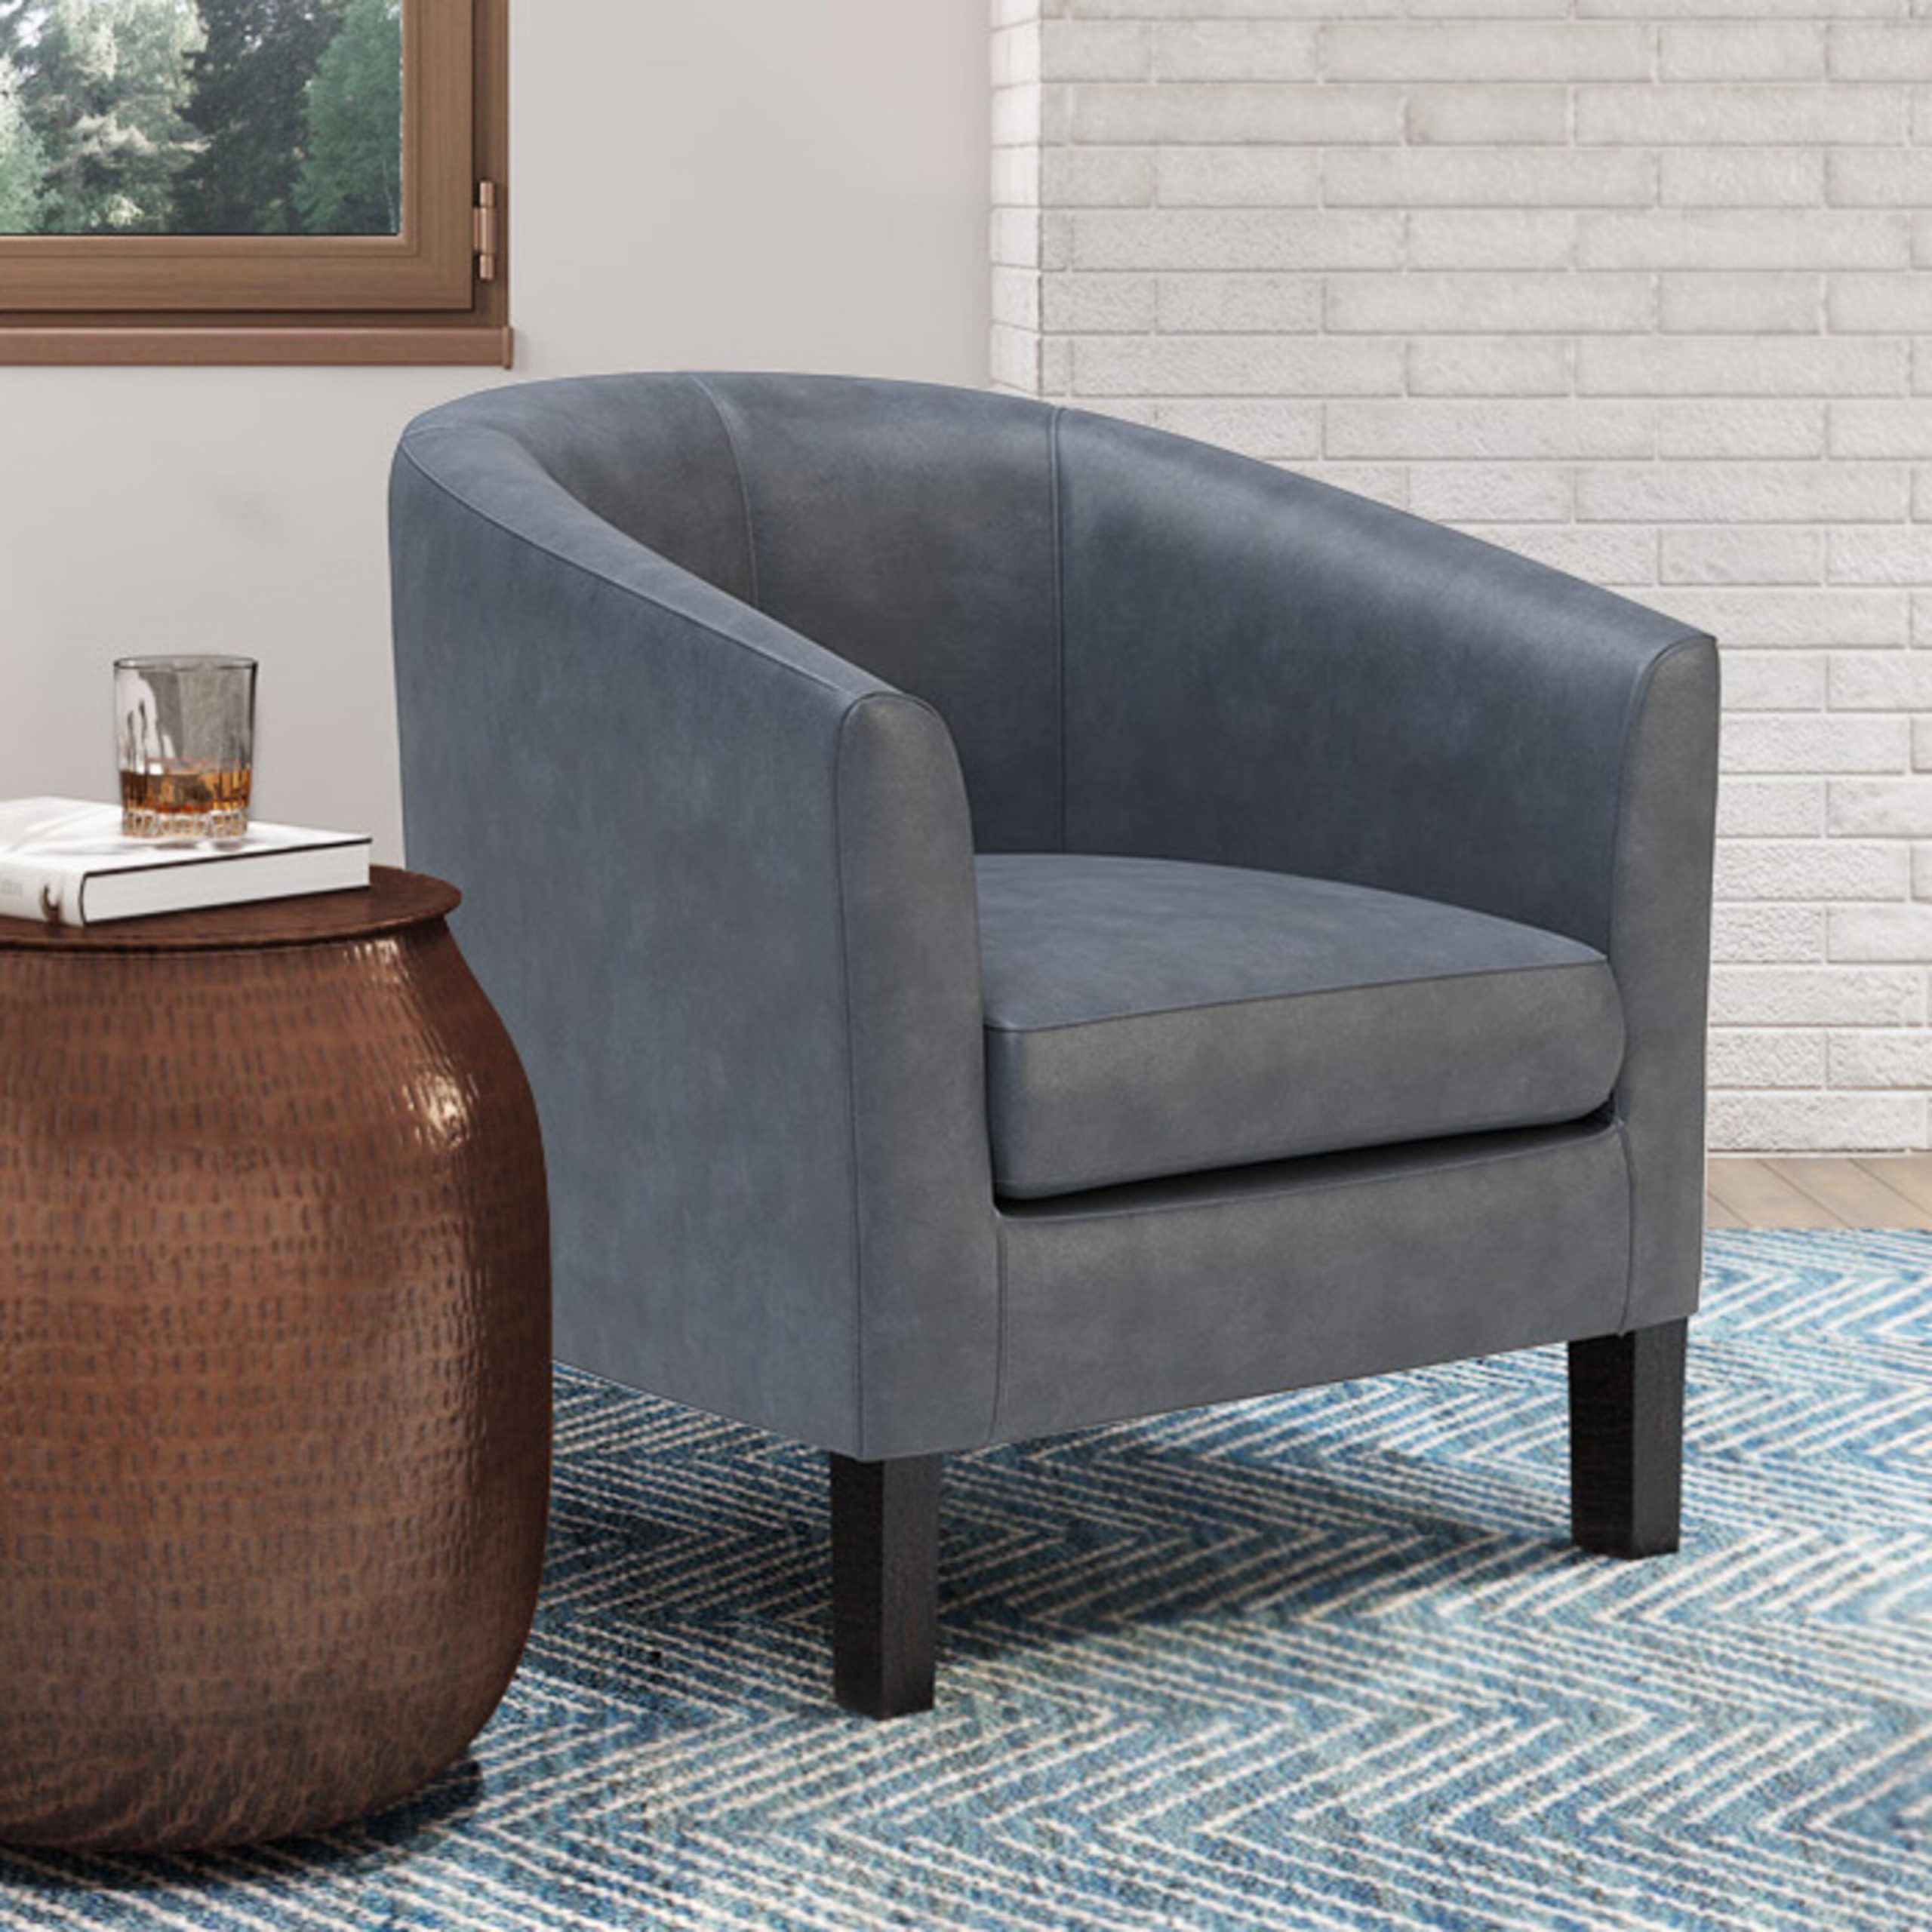 Barrel Accent Chairs On Sale | Wayfair With Alwillie Tufted Back Barrel Chairs (View 6 of 15)